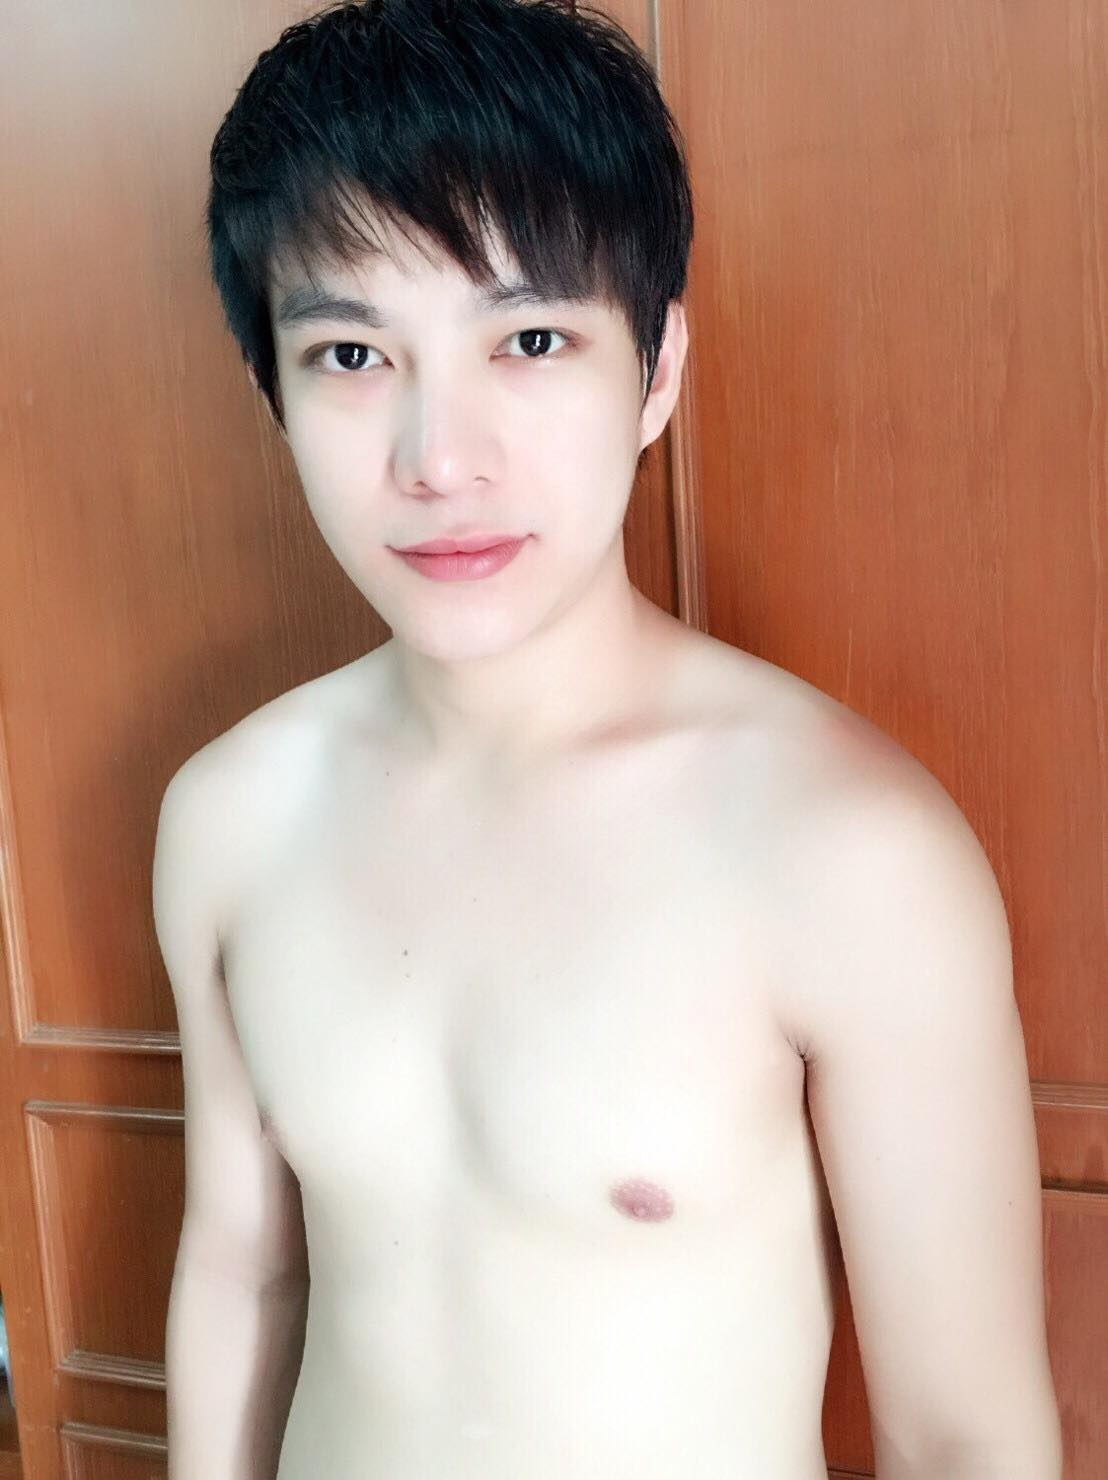 Nude Thai boys